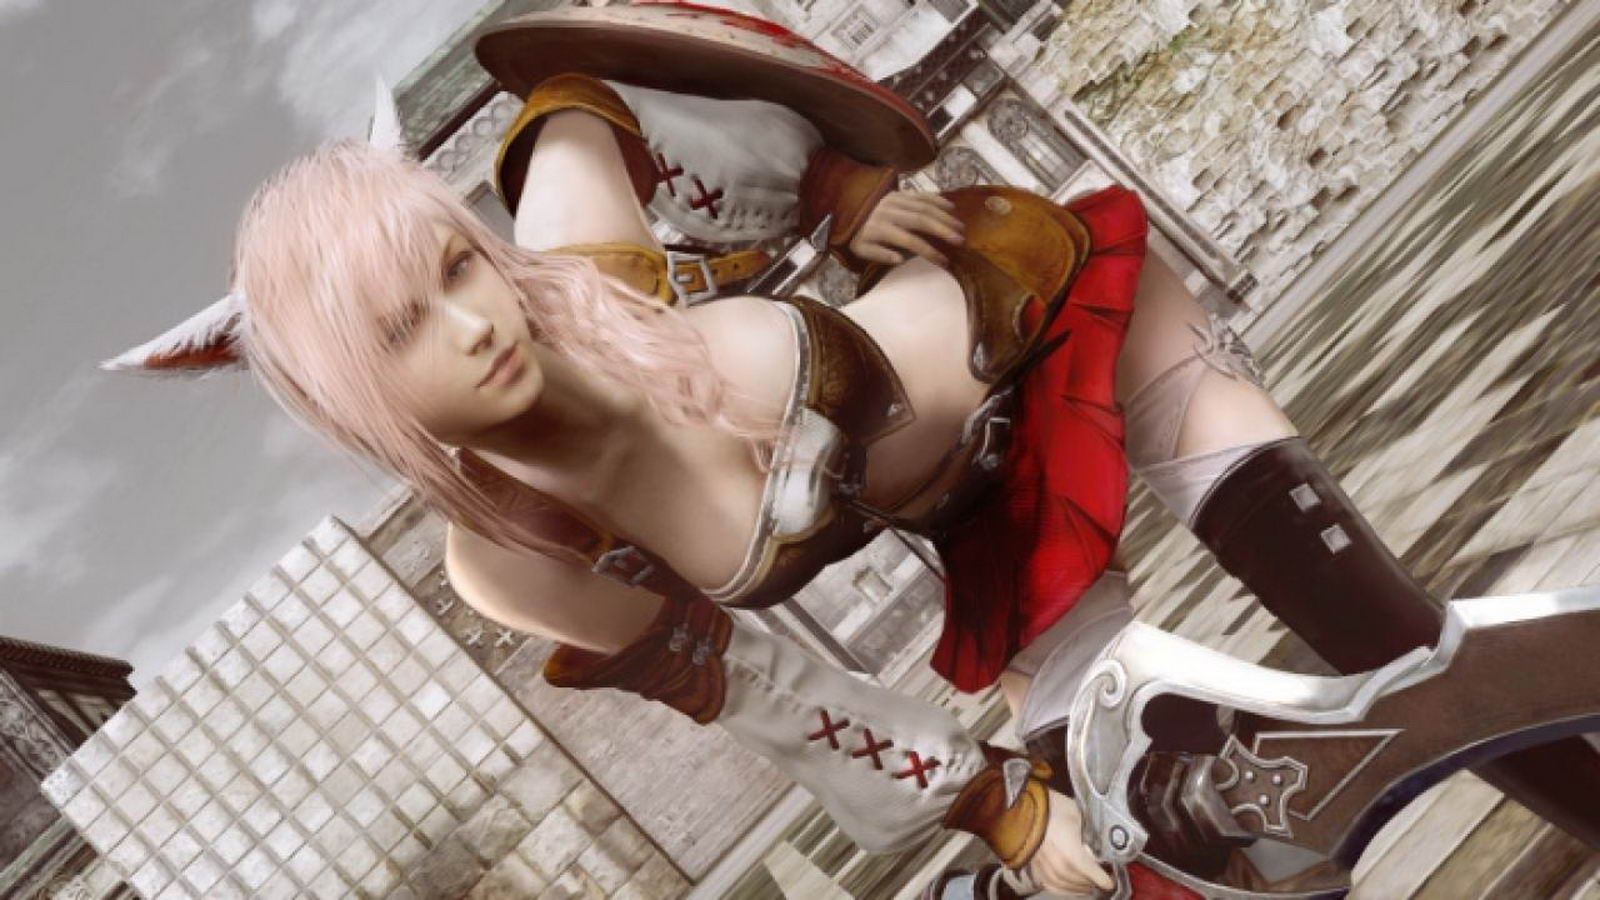 Final fantasy sex picture naked photo